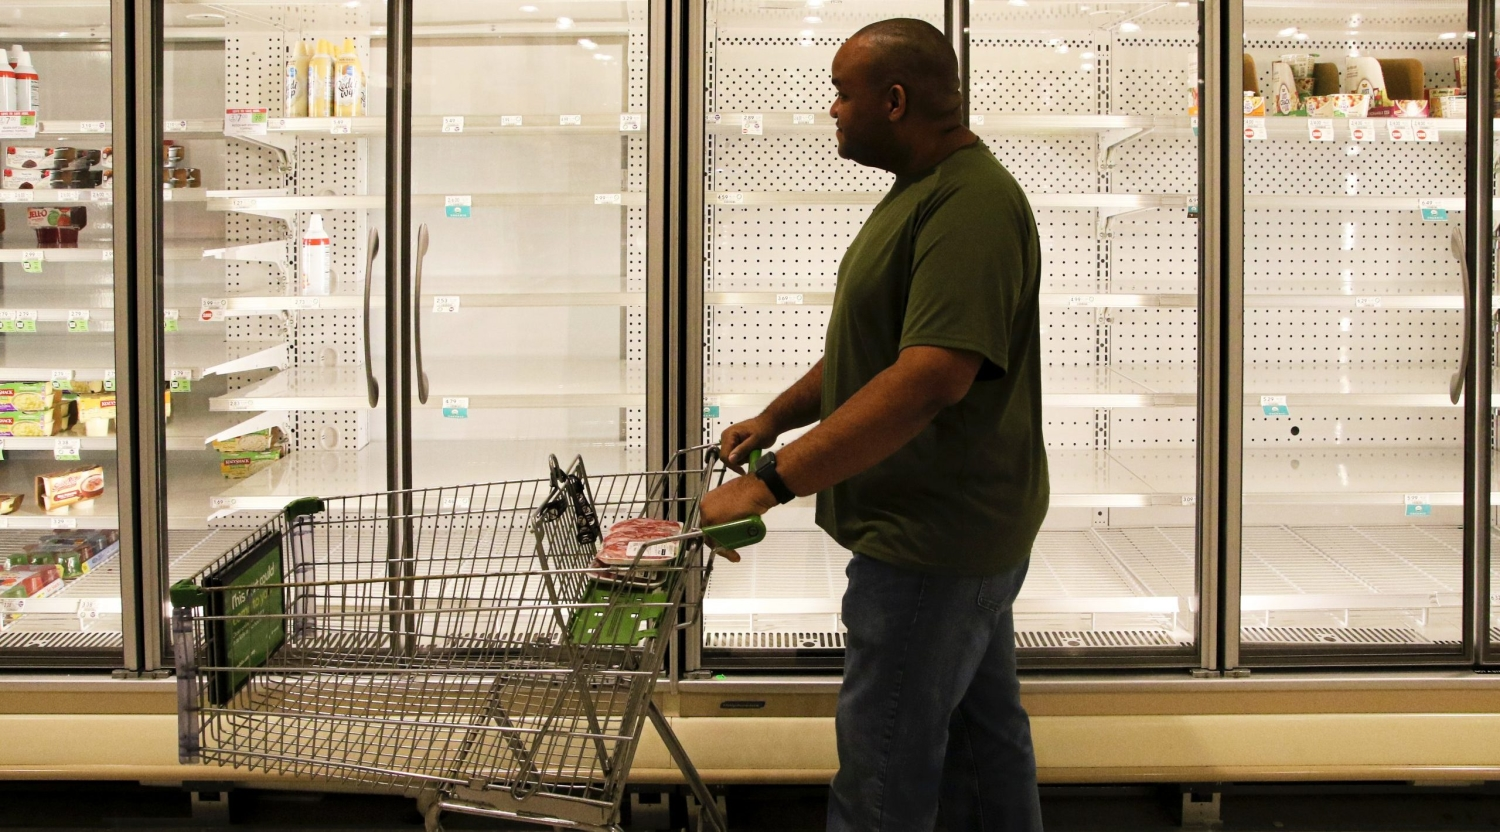 Supermarket shopper pushing cart past empty refrigerator cases